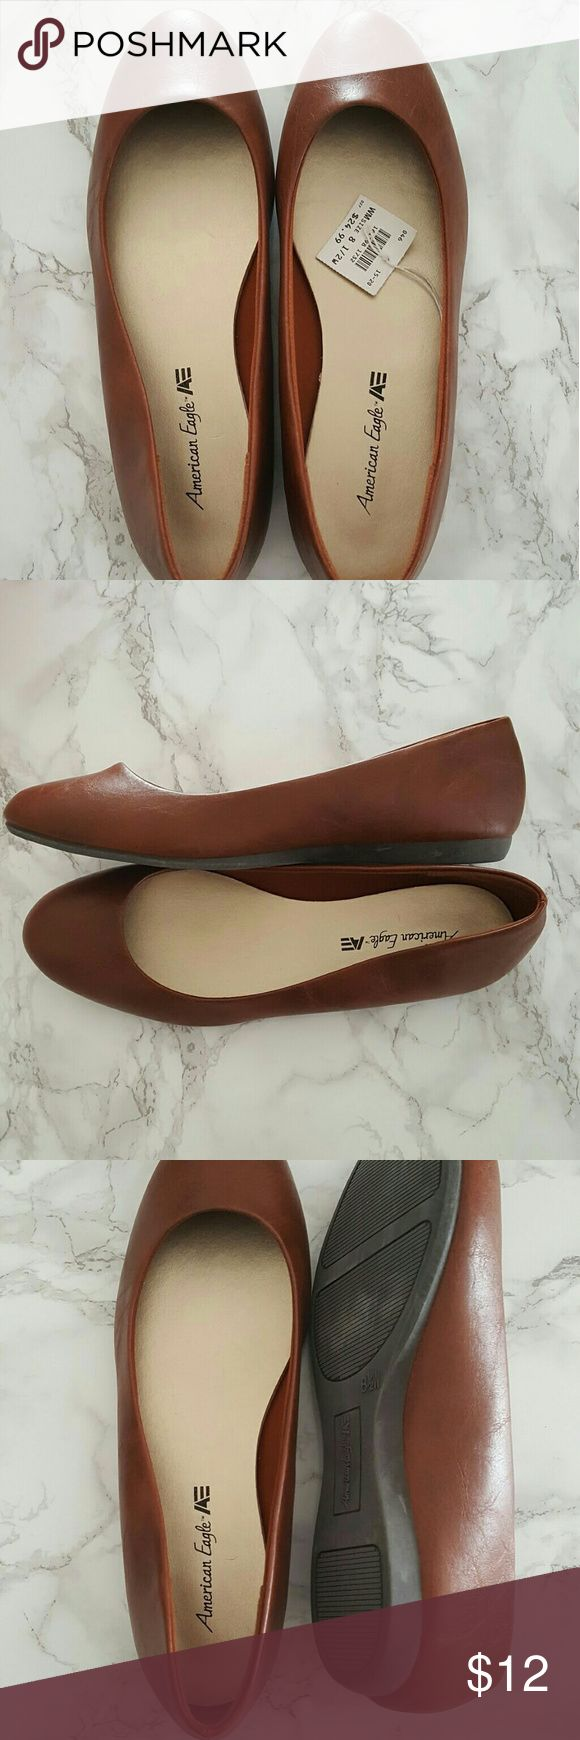 American eagle brown ballet flats New with tags. 8.5 wide. American eagle by payless. American Eagle by Payless Shoes Flats & Loafers